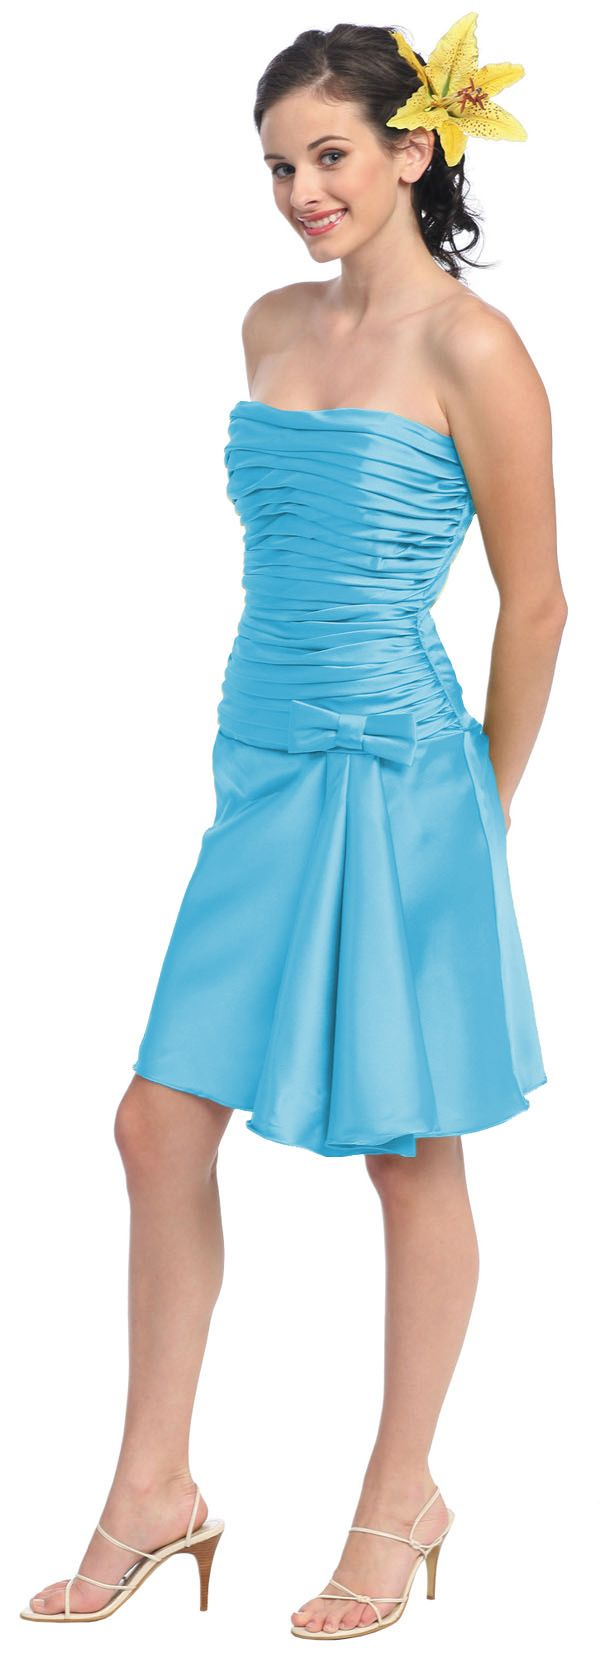 28 best bridesmaid dresses images on pinterest long bridesmaid short turquoise knee length dress strapless bow tie 8999 ombrellifo Choice Image